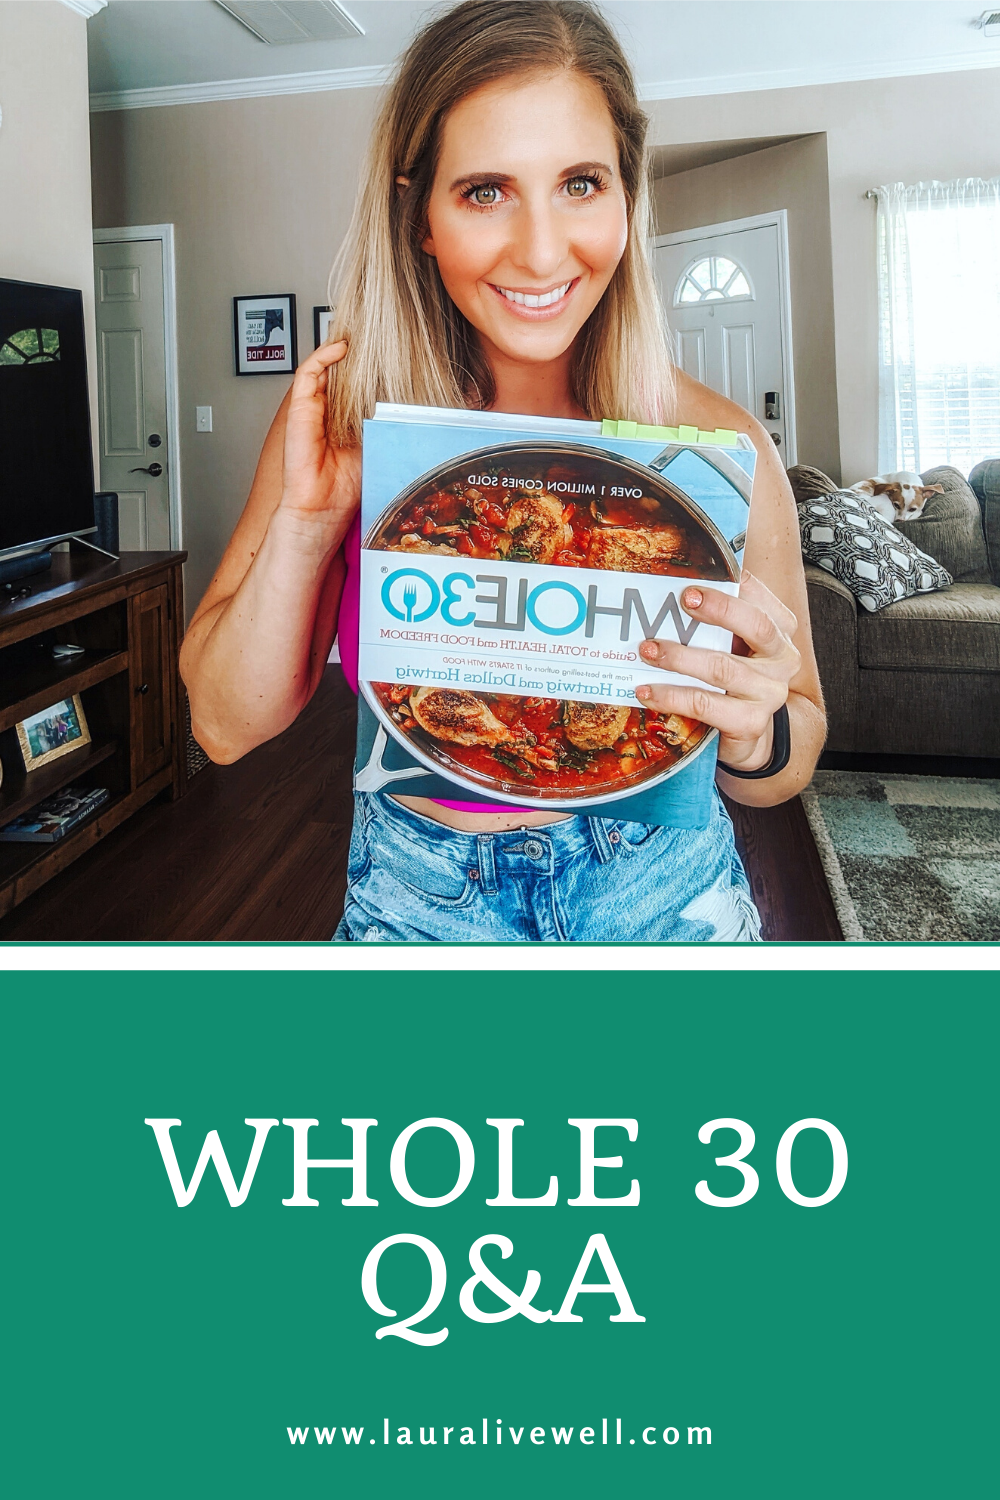 whole 30, detox, detox diet, whole 30 recipes, whole 30 questions and answers, whole 30 experience, whole 30 review, elimination diet tips, elimination diet review, how to do a whole 30, whole 30 recipes, paleo recipes, elimination diet recipes, weight loss, transformation, body transformation, weight loss journey, health journey, health tips, healthy habits, whole 30 Q&A, hormones, healthy hormones, hormal imbalance, heal my hormones, women's health, healthy hormones